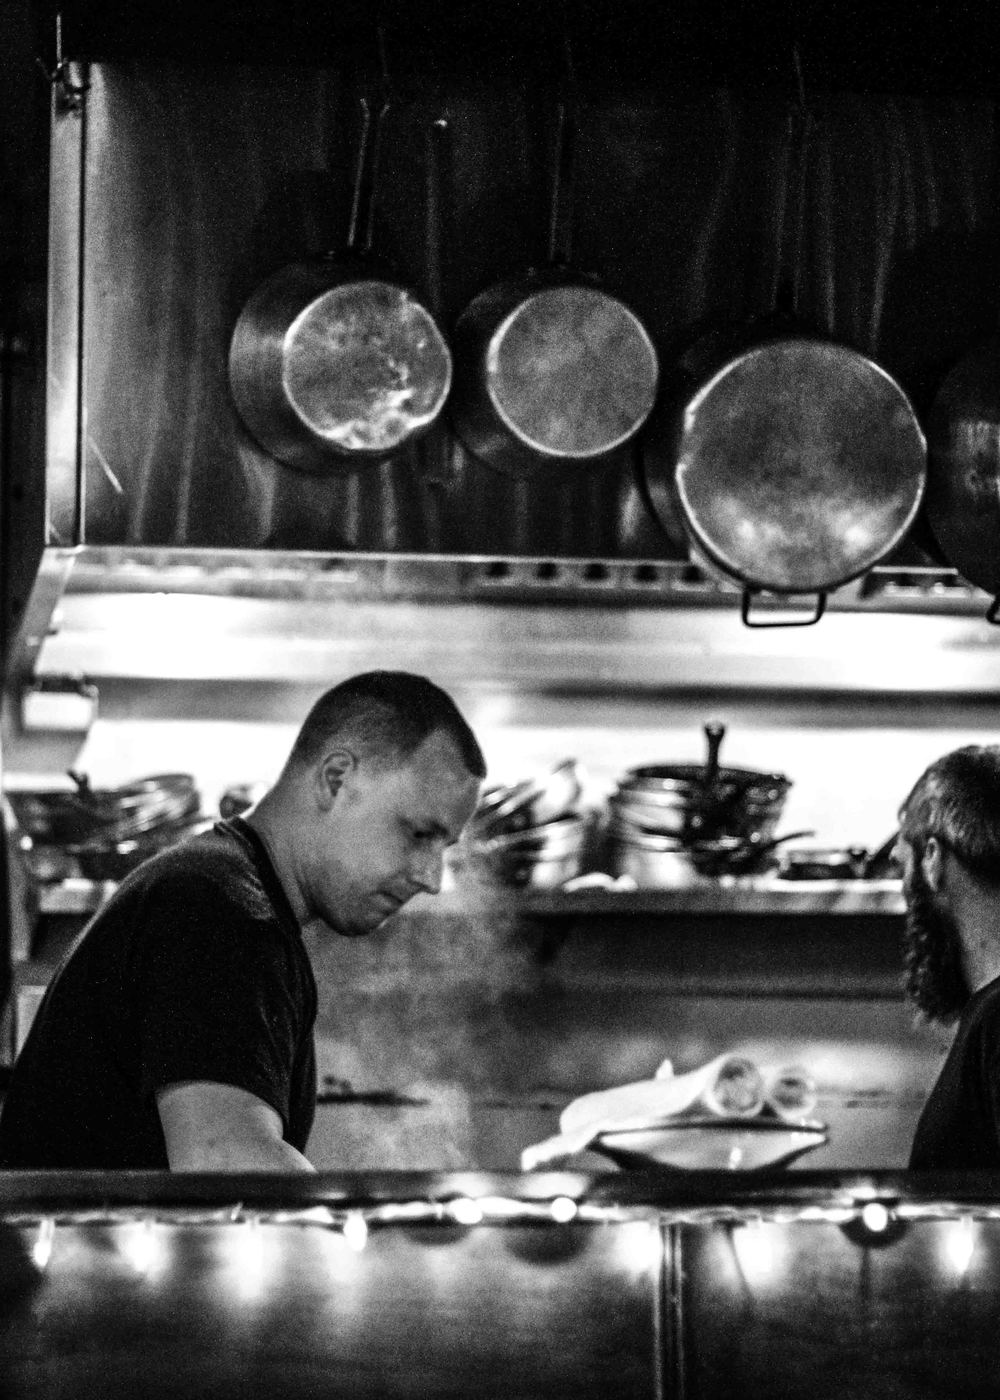 I have voyeuristic tendencies and love when restaurants have open kitchens. Pictured are the Bacchus cooks hard at work.